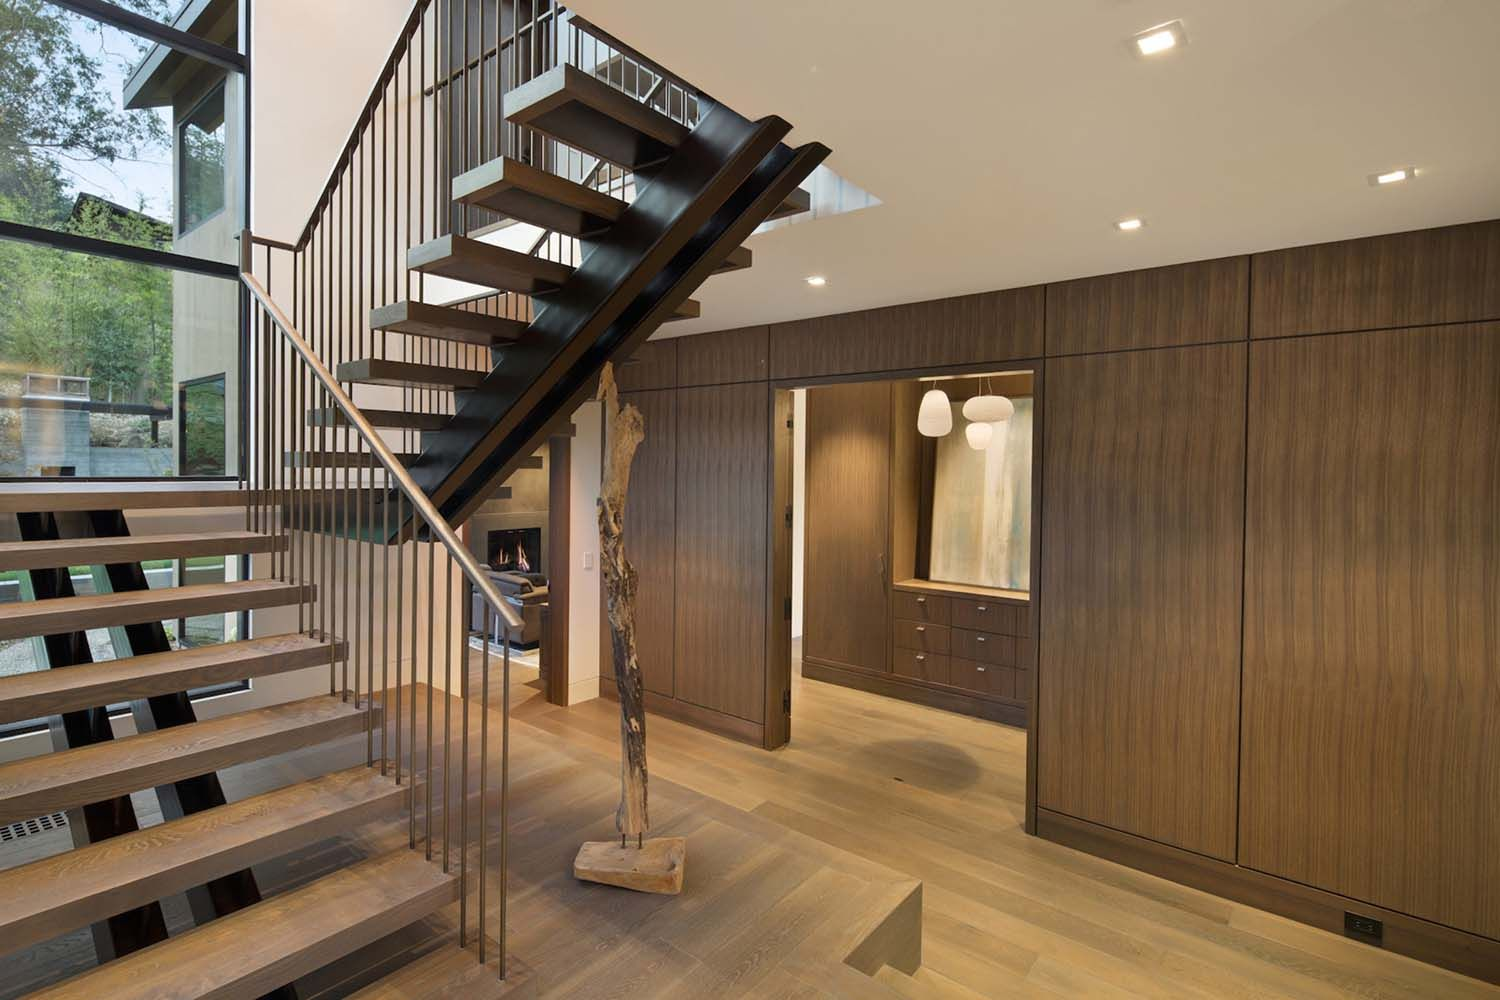 home interior design stairs%0A Courtyard home offers a fresh and contemporary aesthetic in California